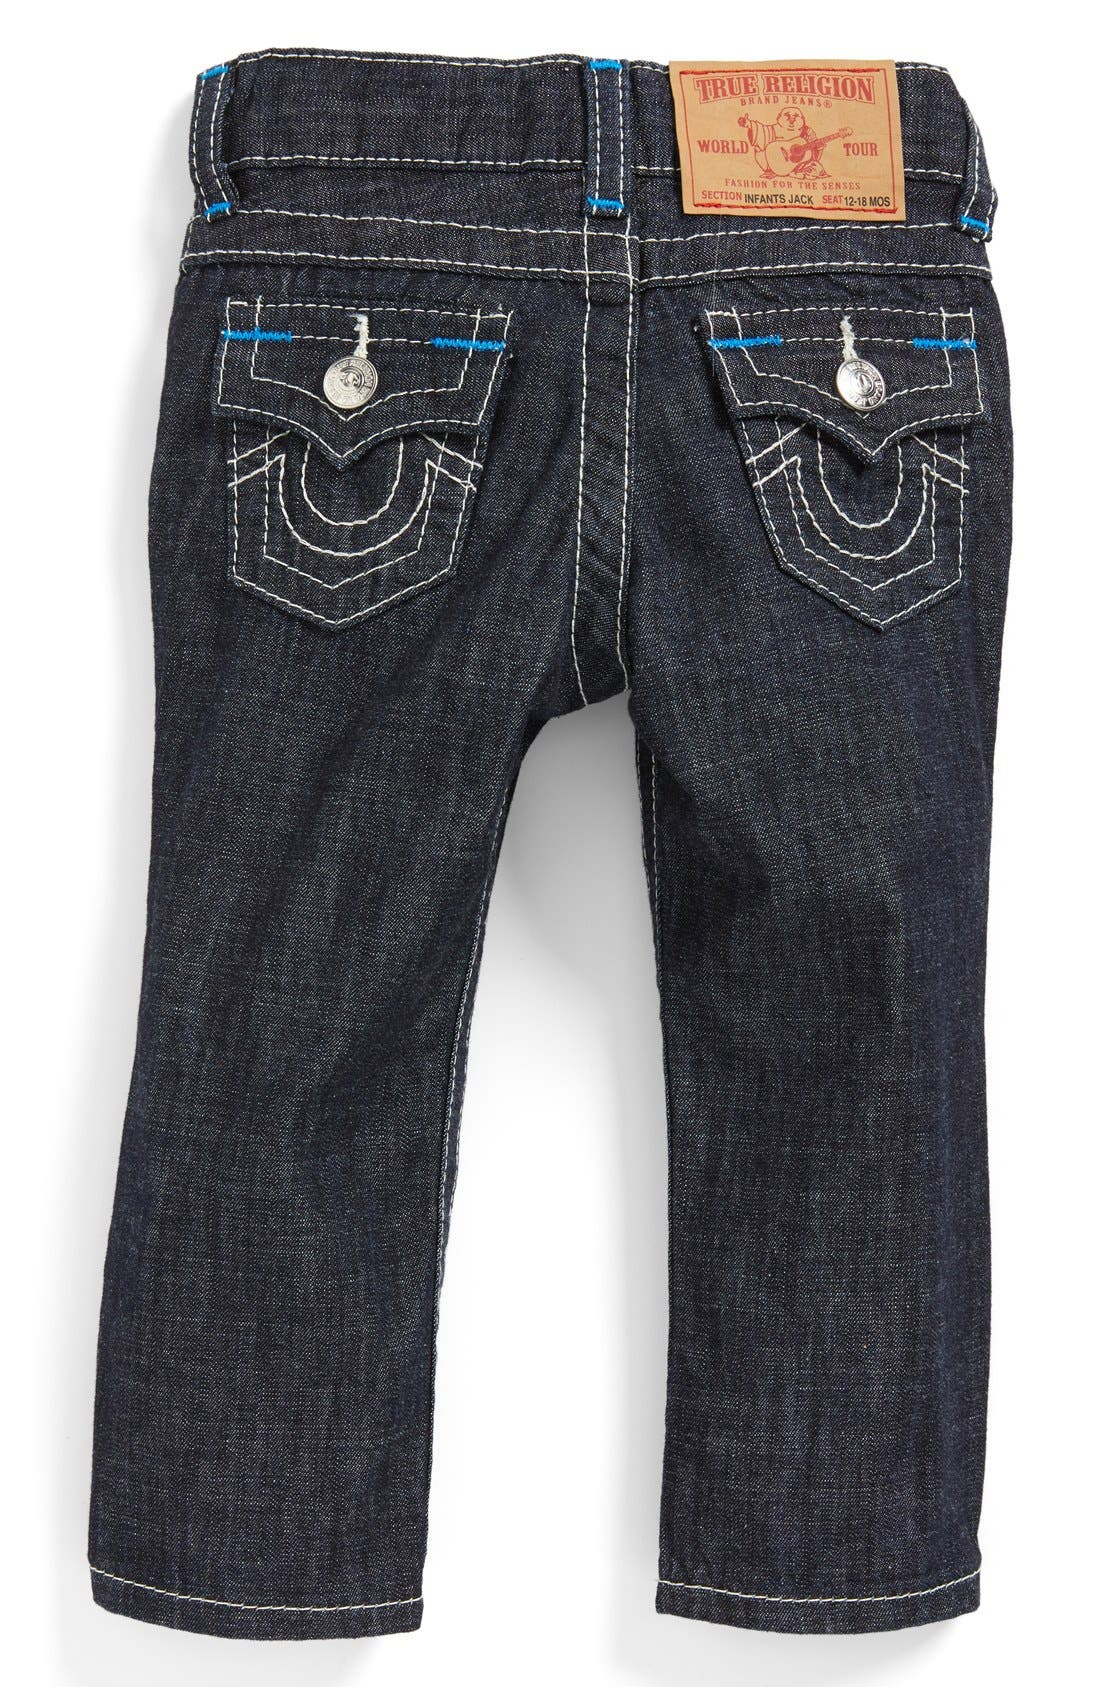 Alternate Image 1 Selected - True Religion Brand Jeans 'Jack' Slim Fit Jeans (Baby Boys)